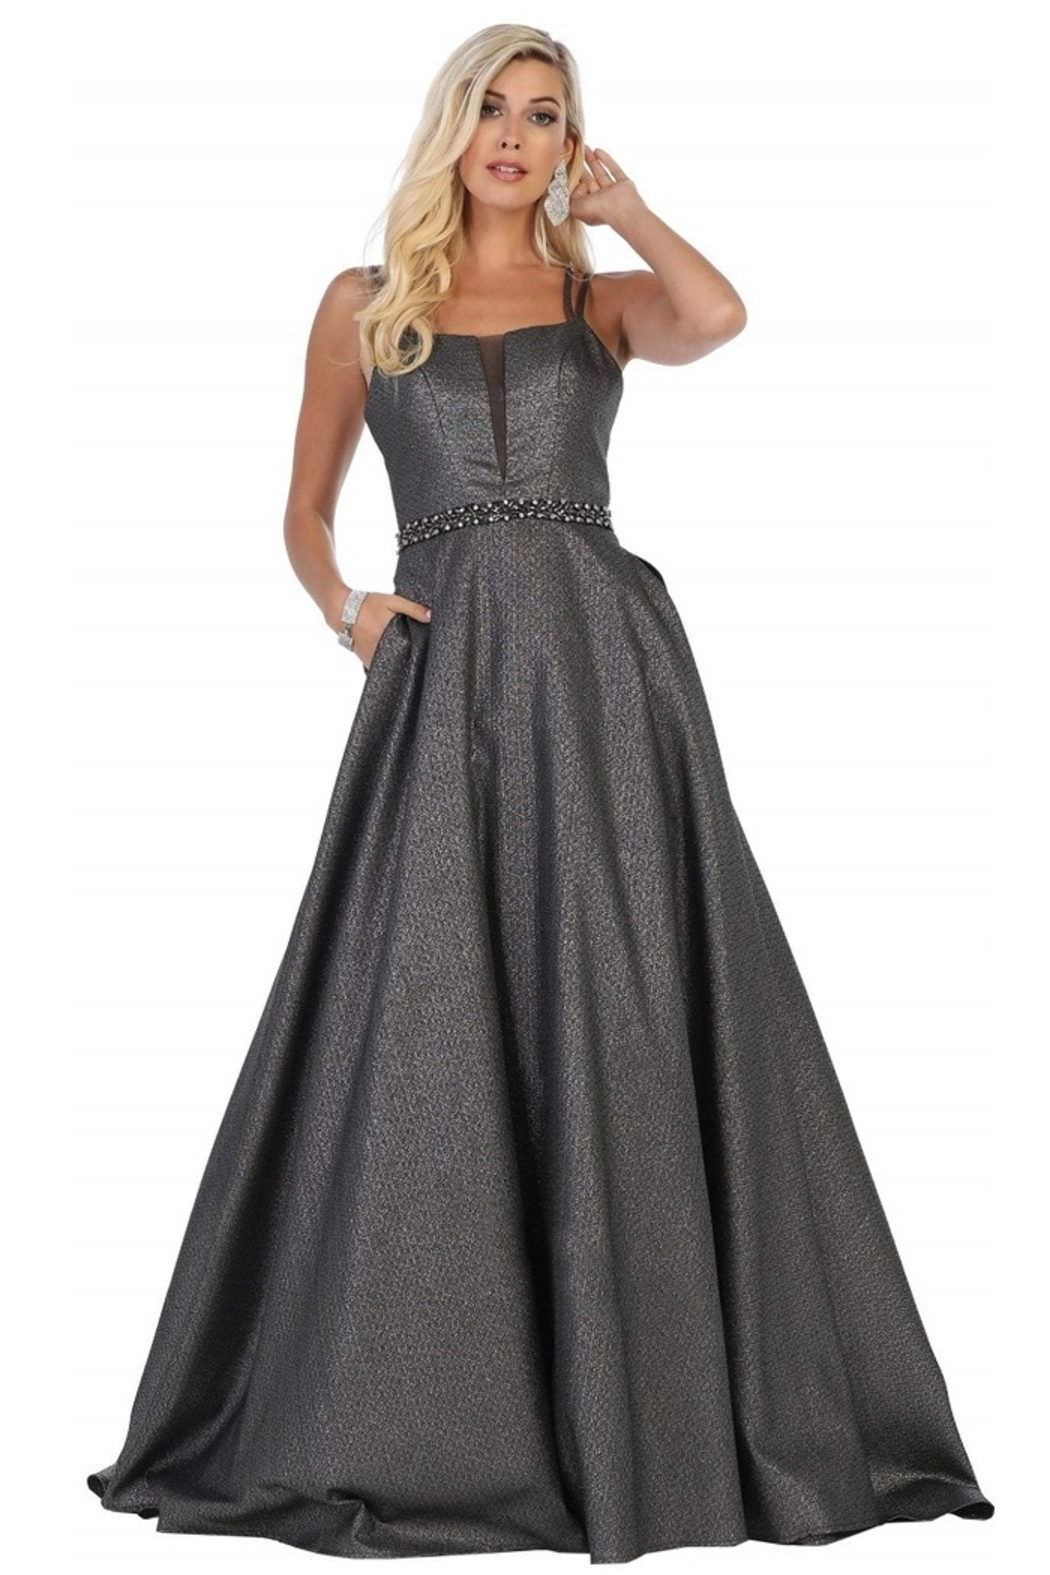 May Queen  Silver & Black Metallic Formal Ball Gown - Main Image